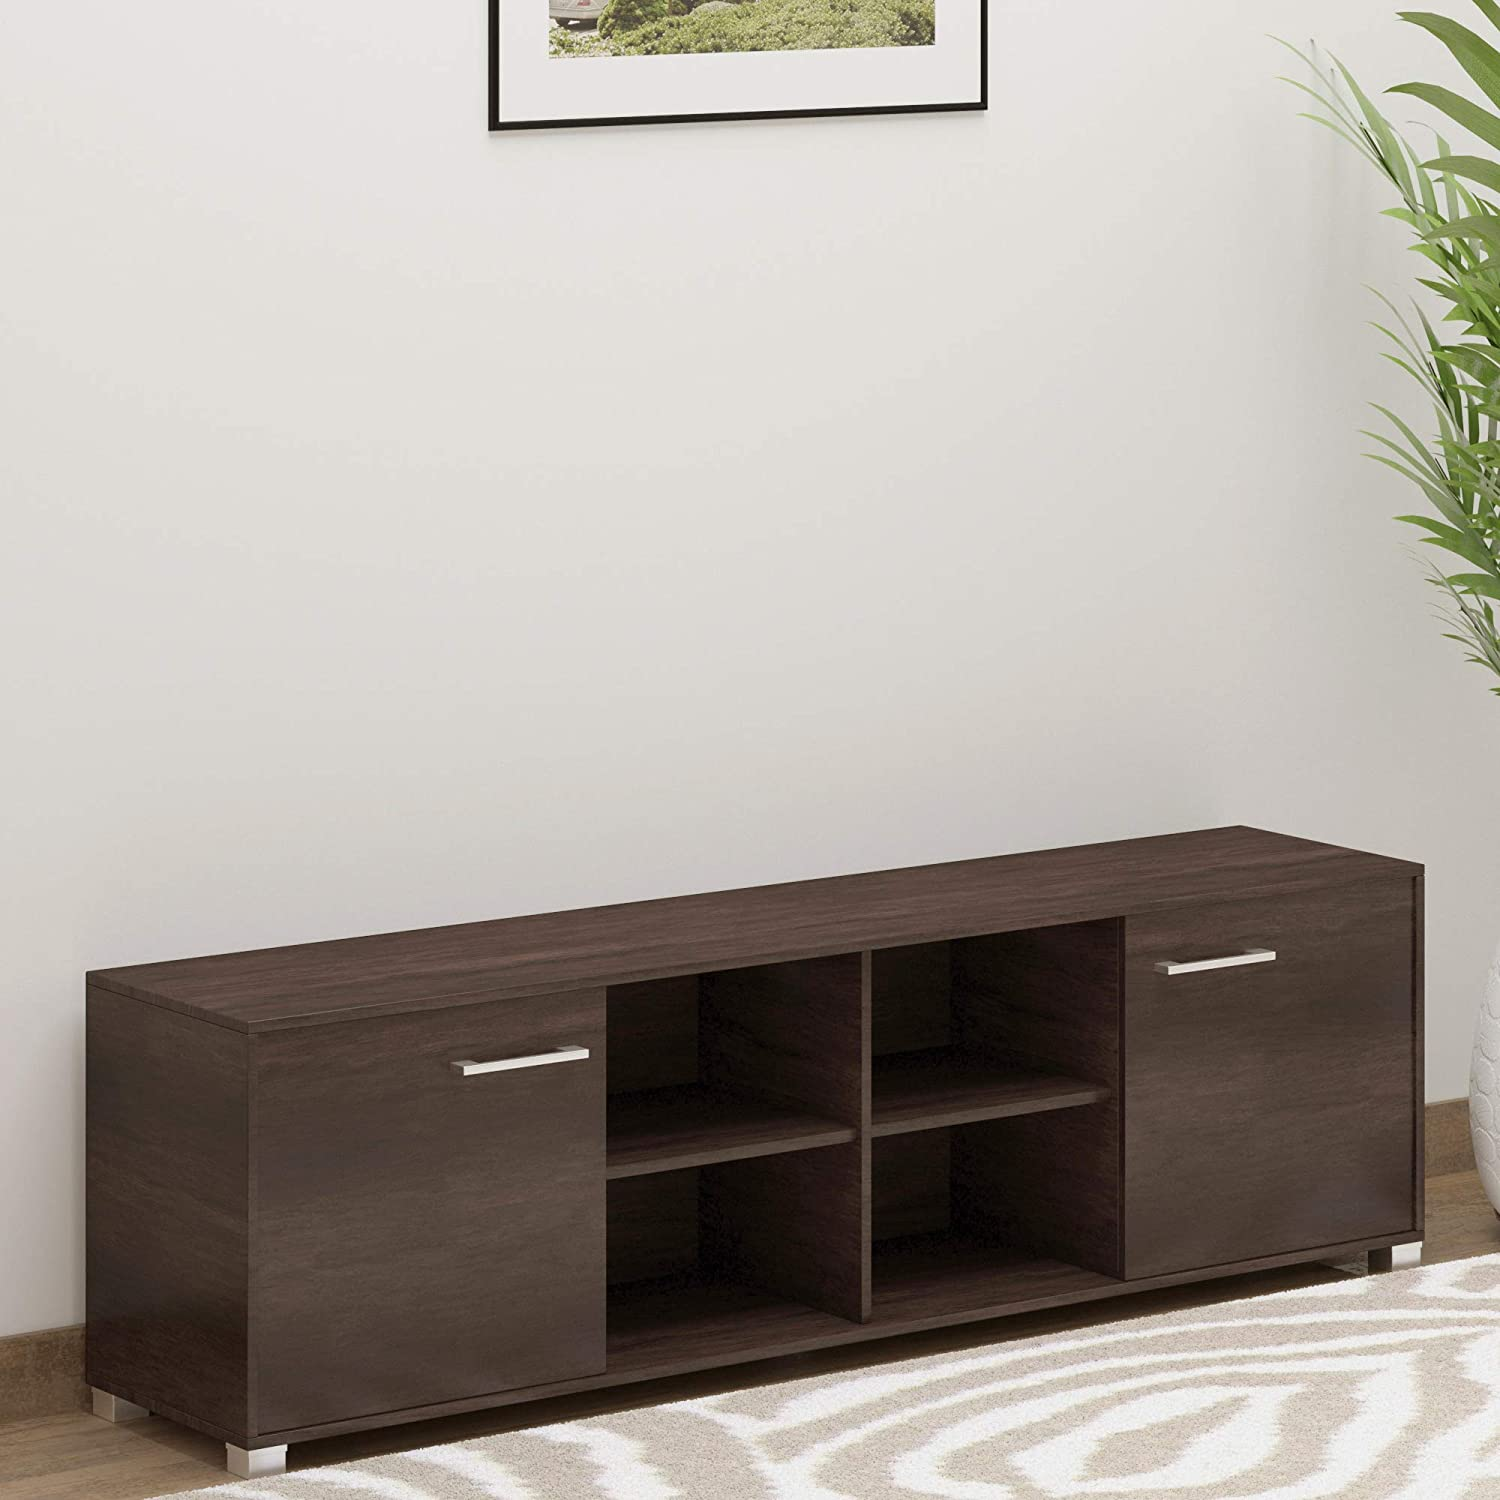 Deckup Uniti TV Stand And Home Entertainment Unit (Wenge,